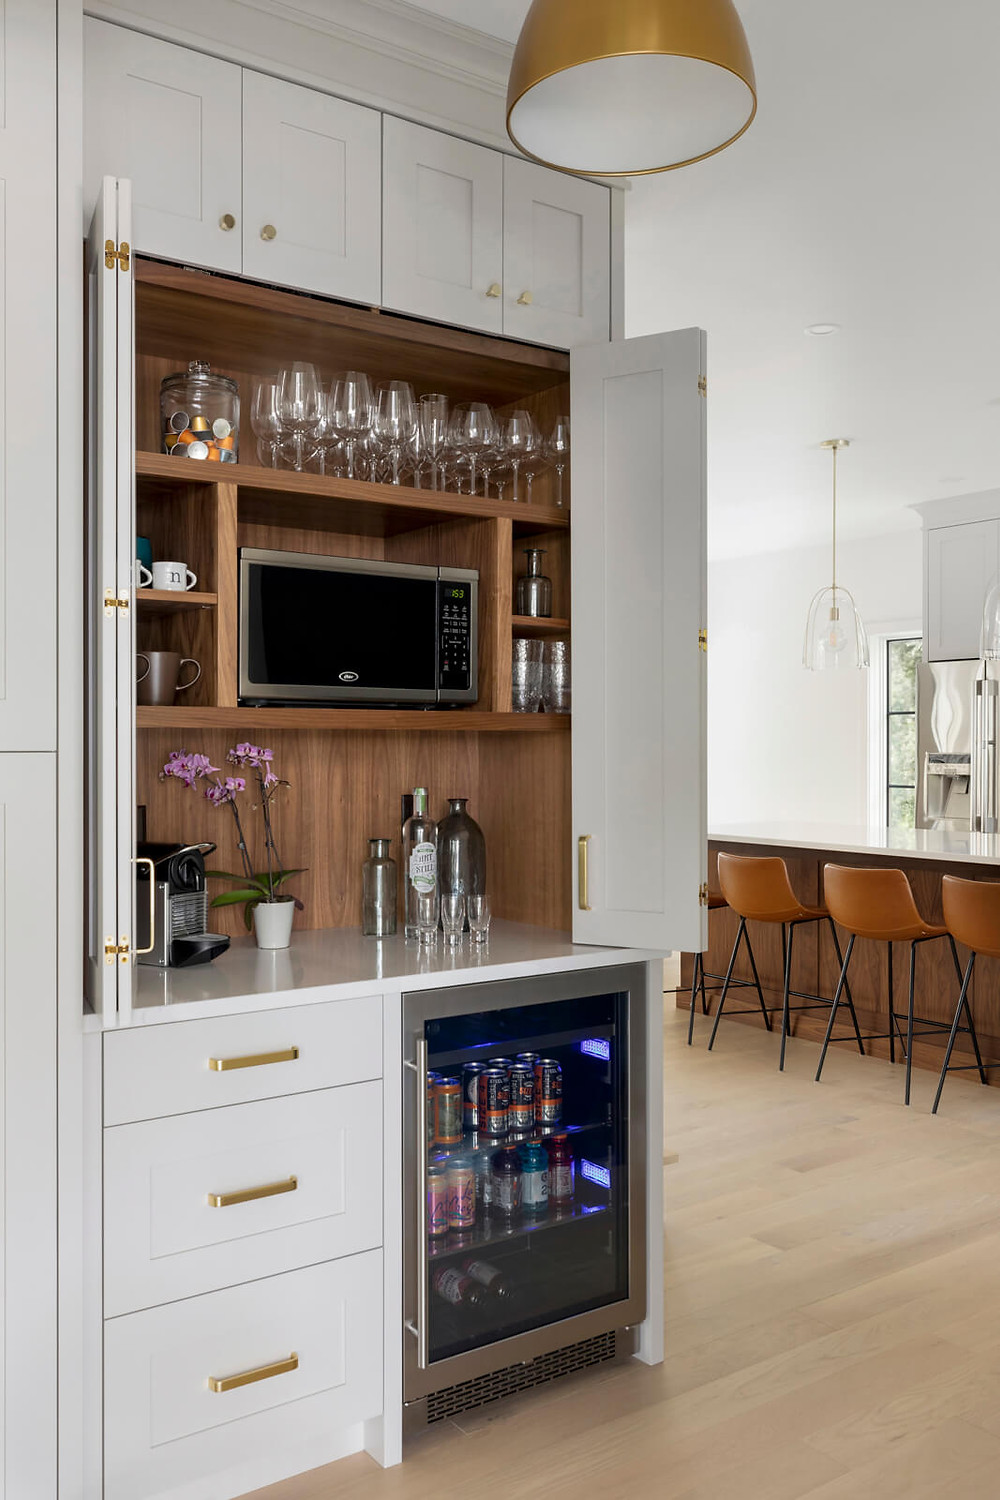 Custom walnut paneled kitchen pantry with retractable bifold doors to conceal microwave and bar.